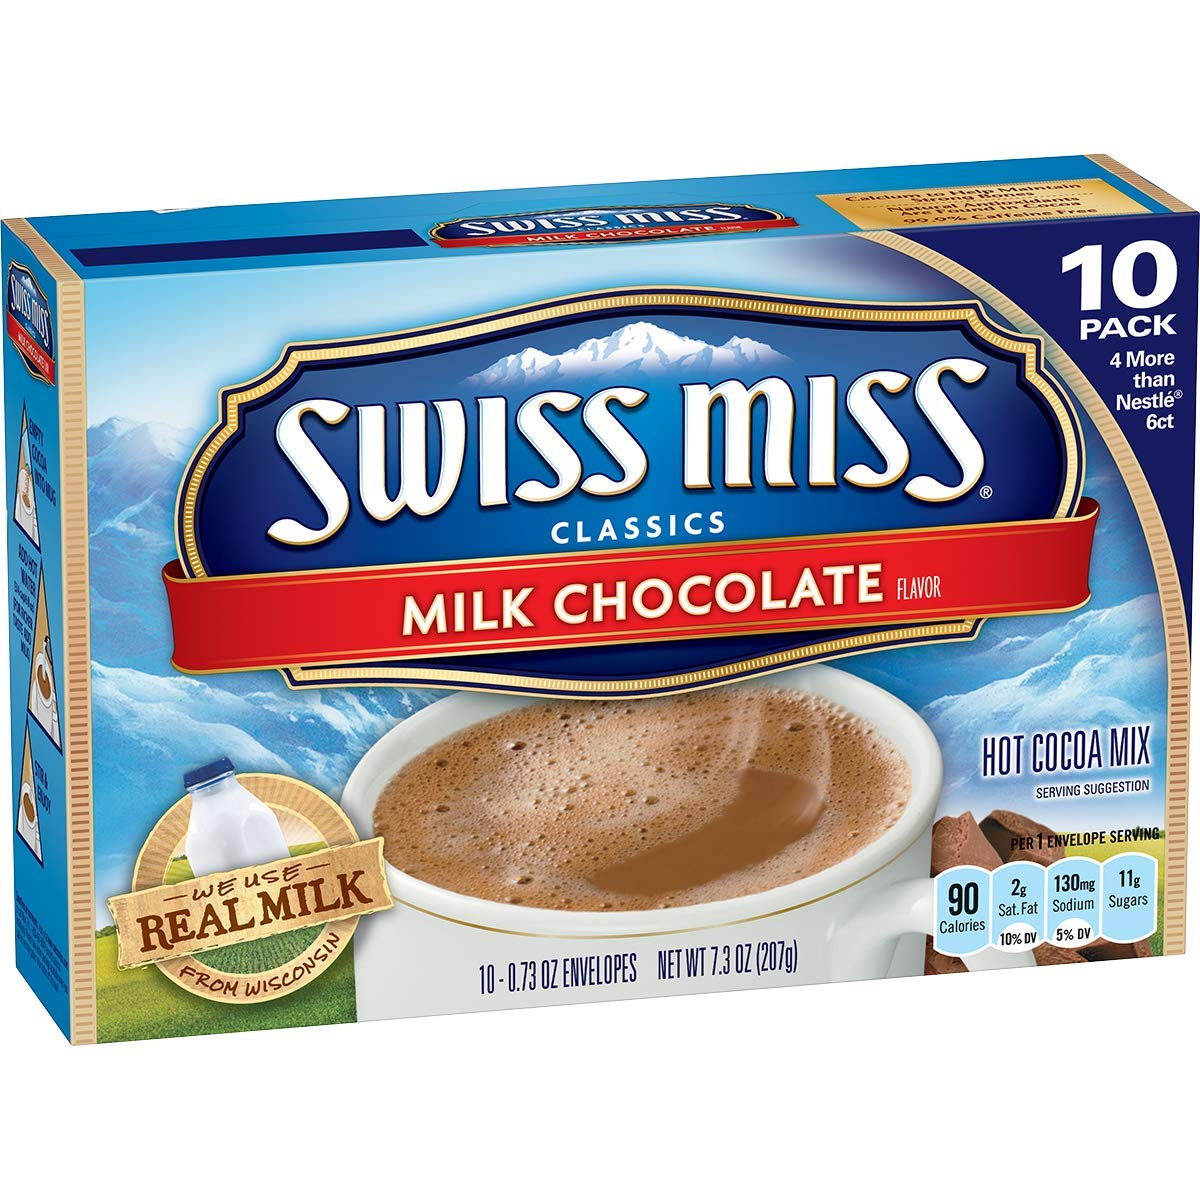 Swiss Miss Milk Chocolate Flavor Hot Cocoa Mix, 10-Count 0.73-oz. Packets (Packof 12)